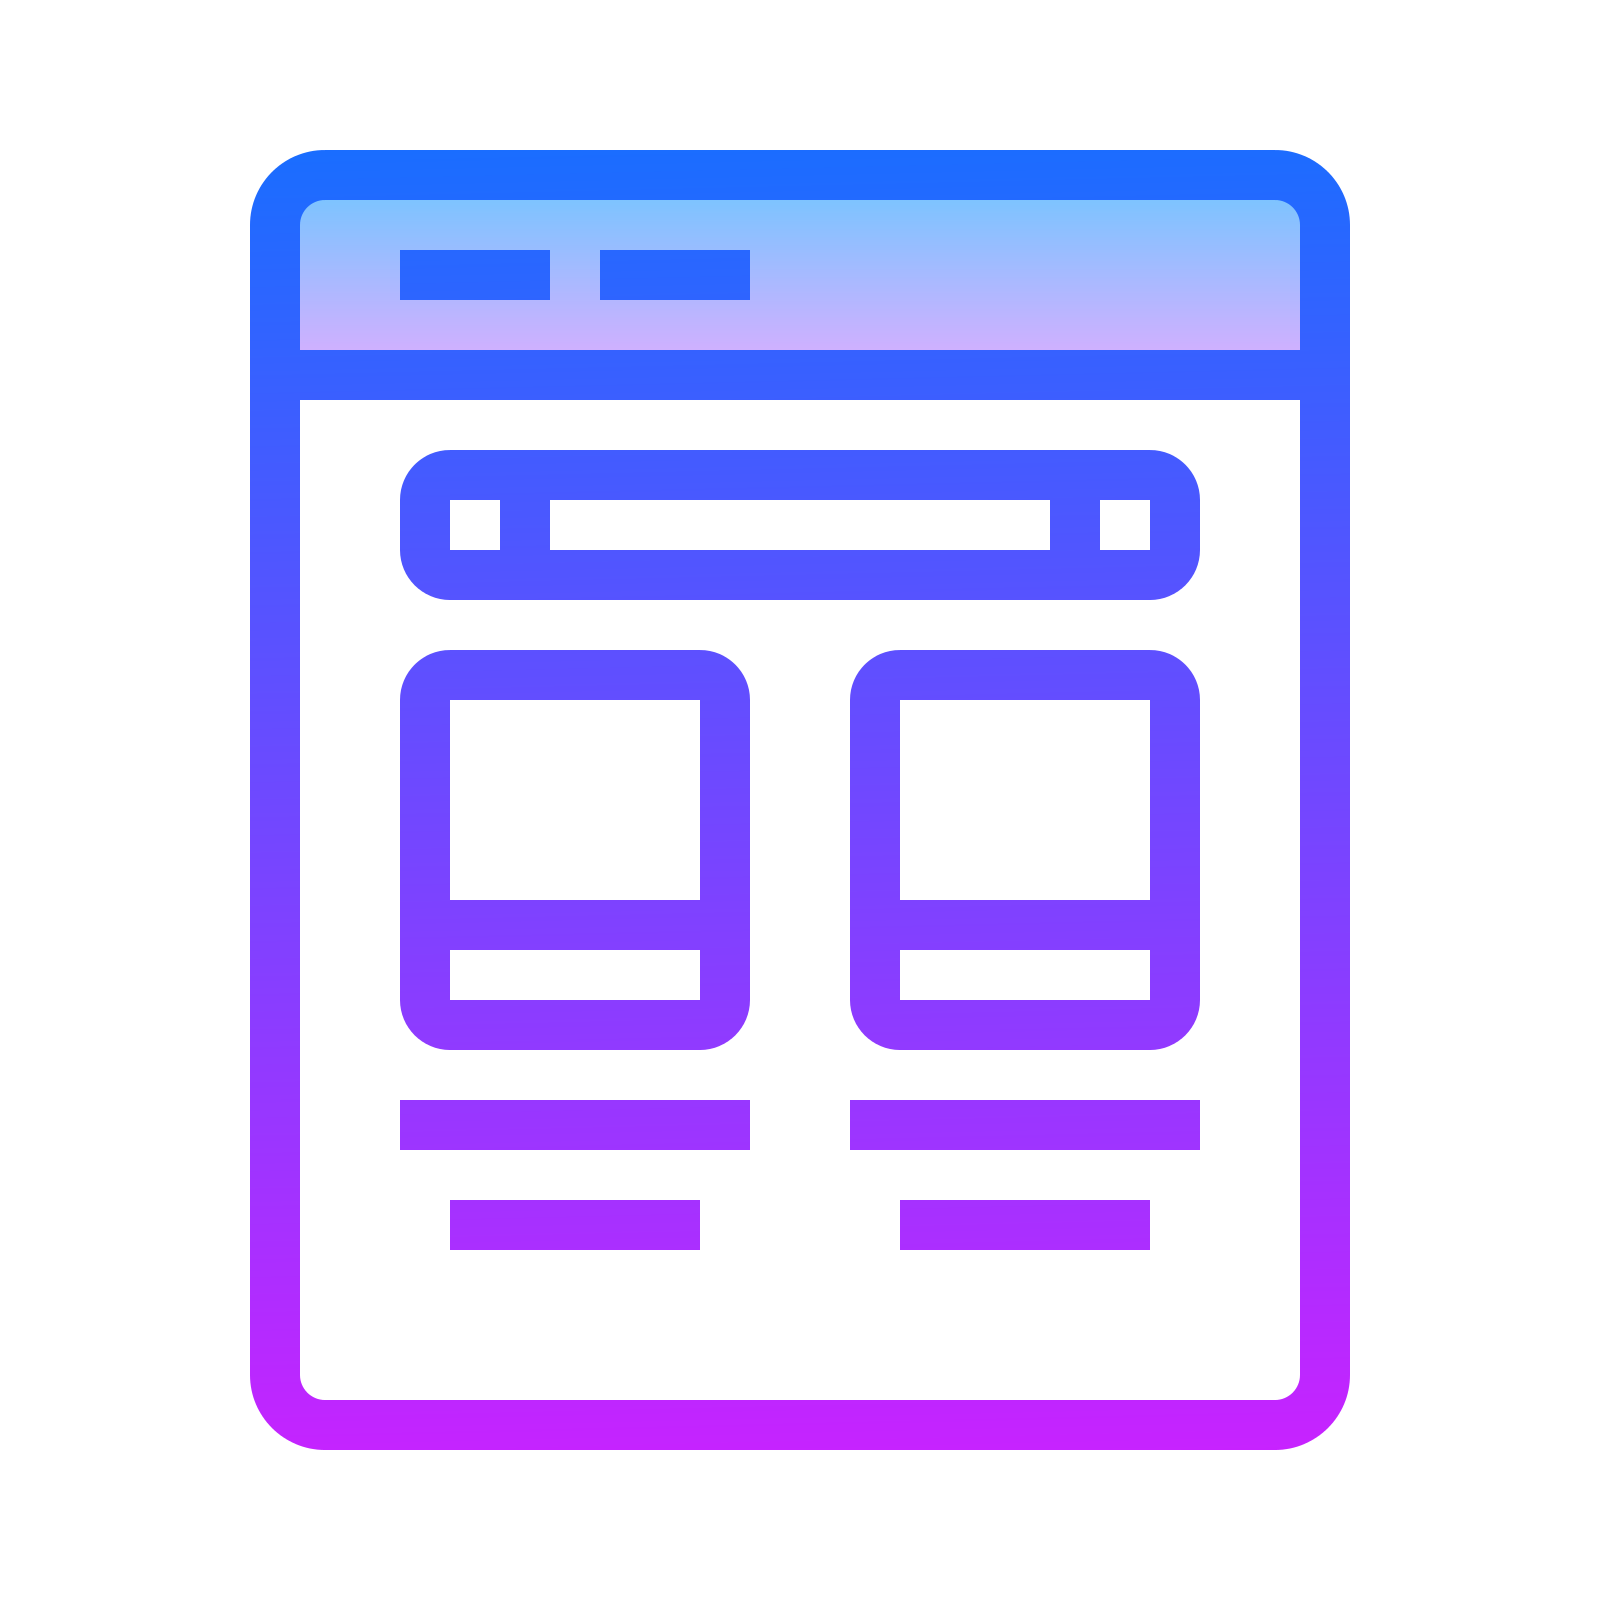 Icon Template Png, png collections at sccpre.cat.